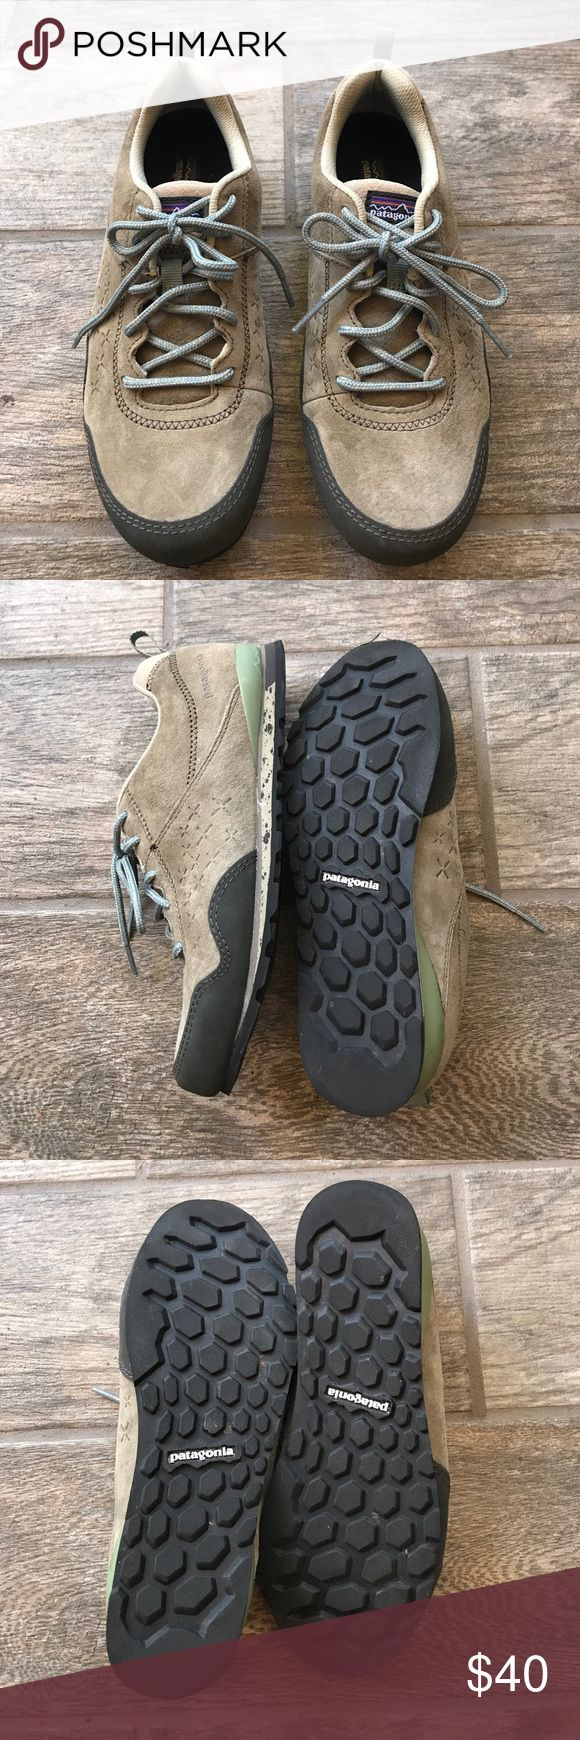 Women's Vela Hiking Shoes Like new. Worn only a couple of times. Never on a hike. No signs of heavy wear. Color: Olive Night. Offers welcome. Patagonia Shoes Sneakers